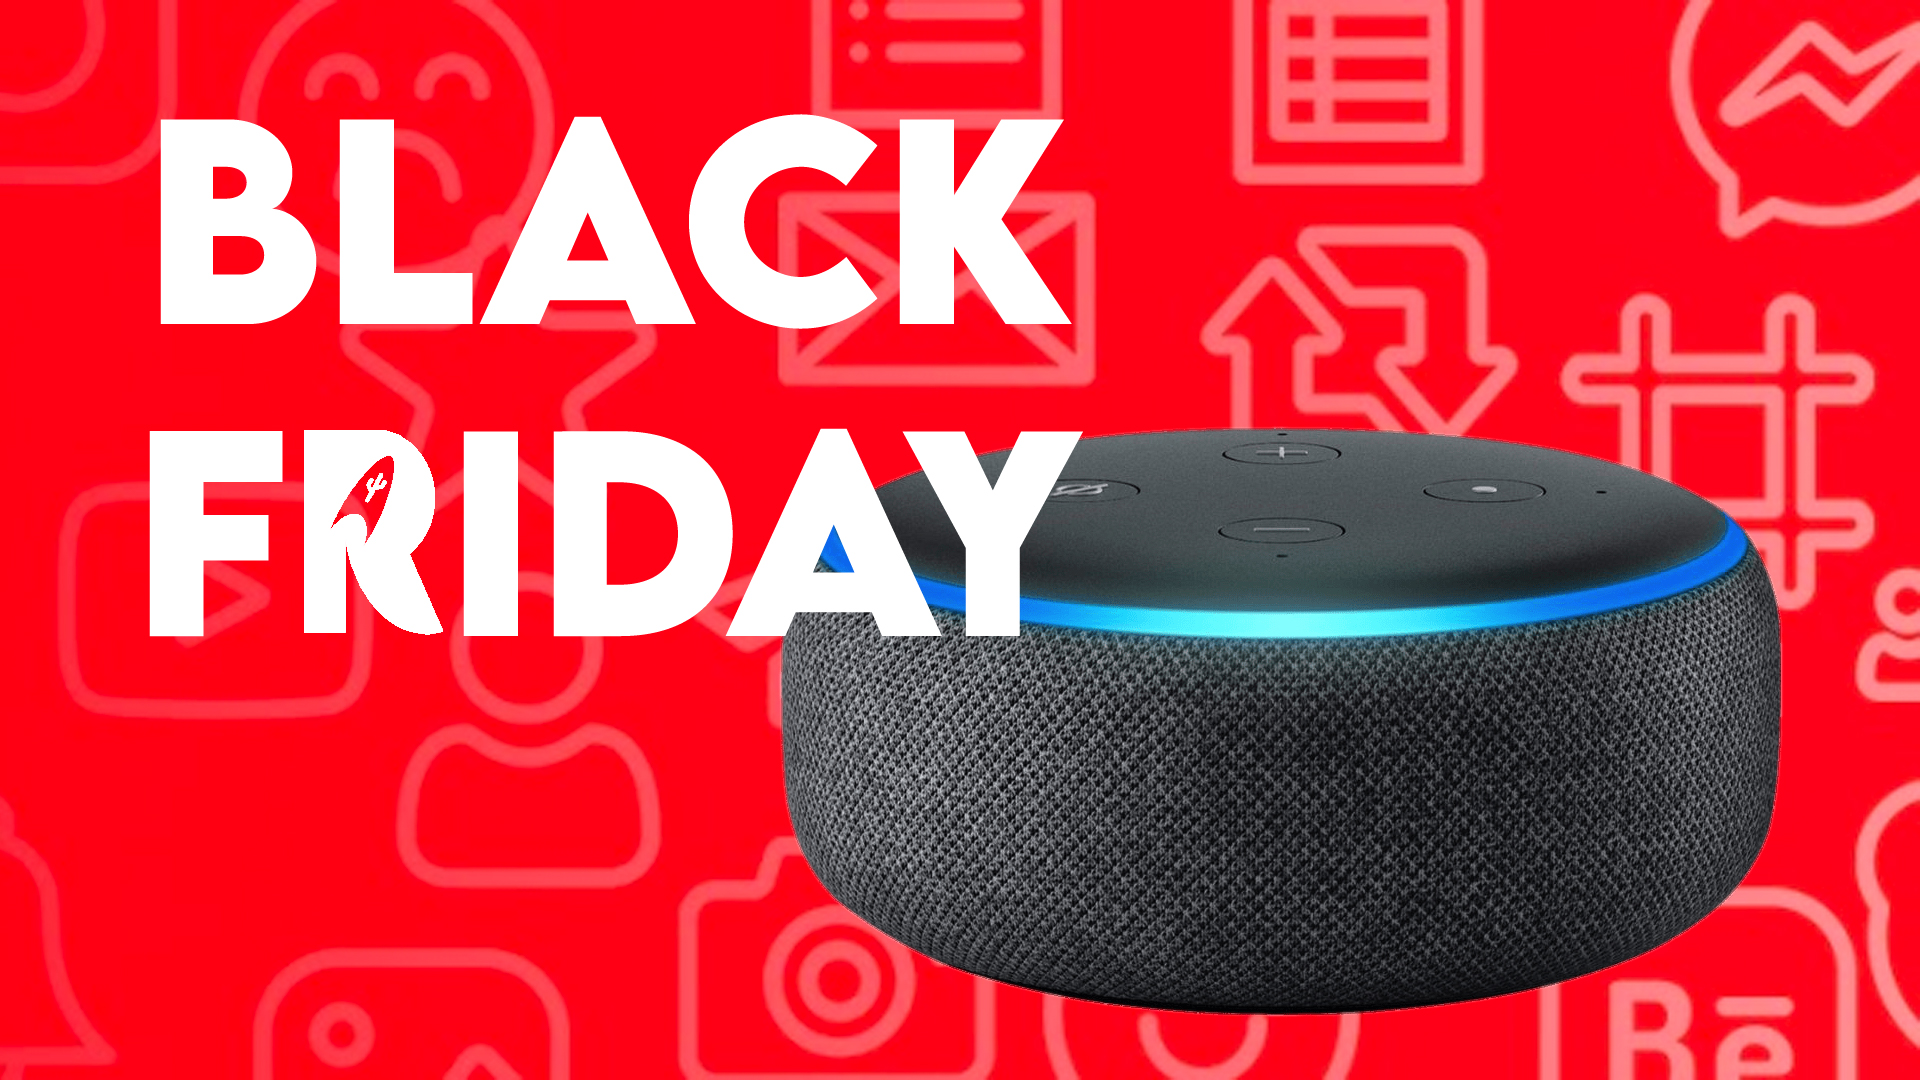 L'Echo Dot d'Amazon à 20€ pour le Black Friday 2020 !